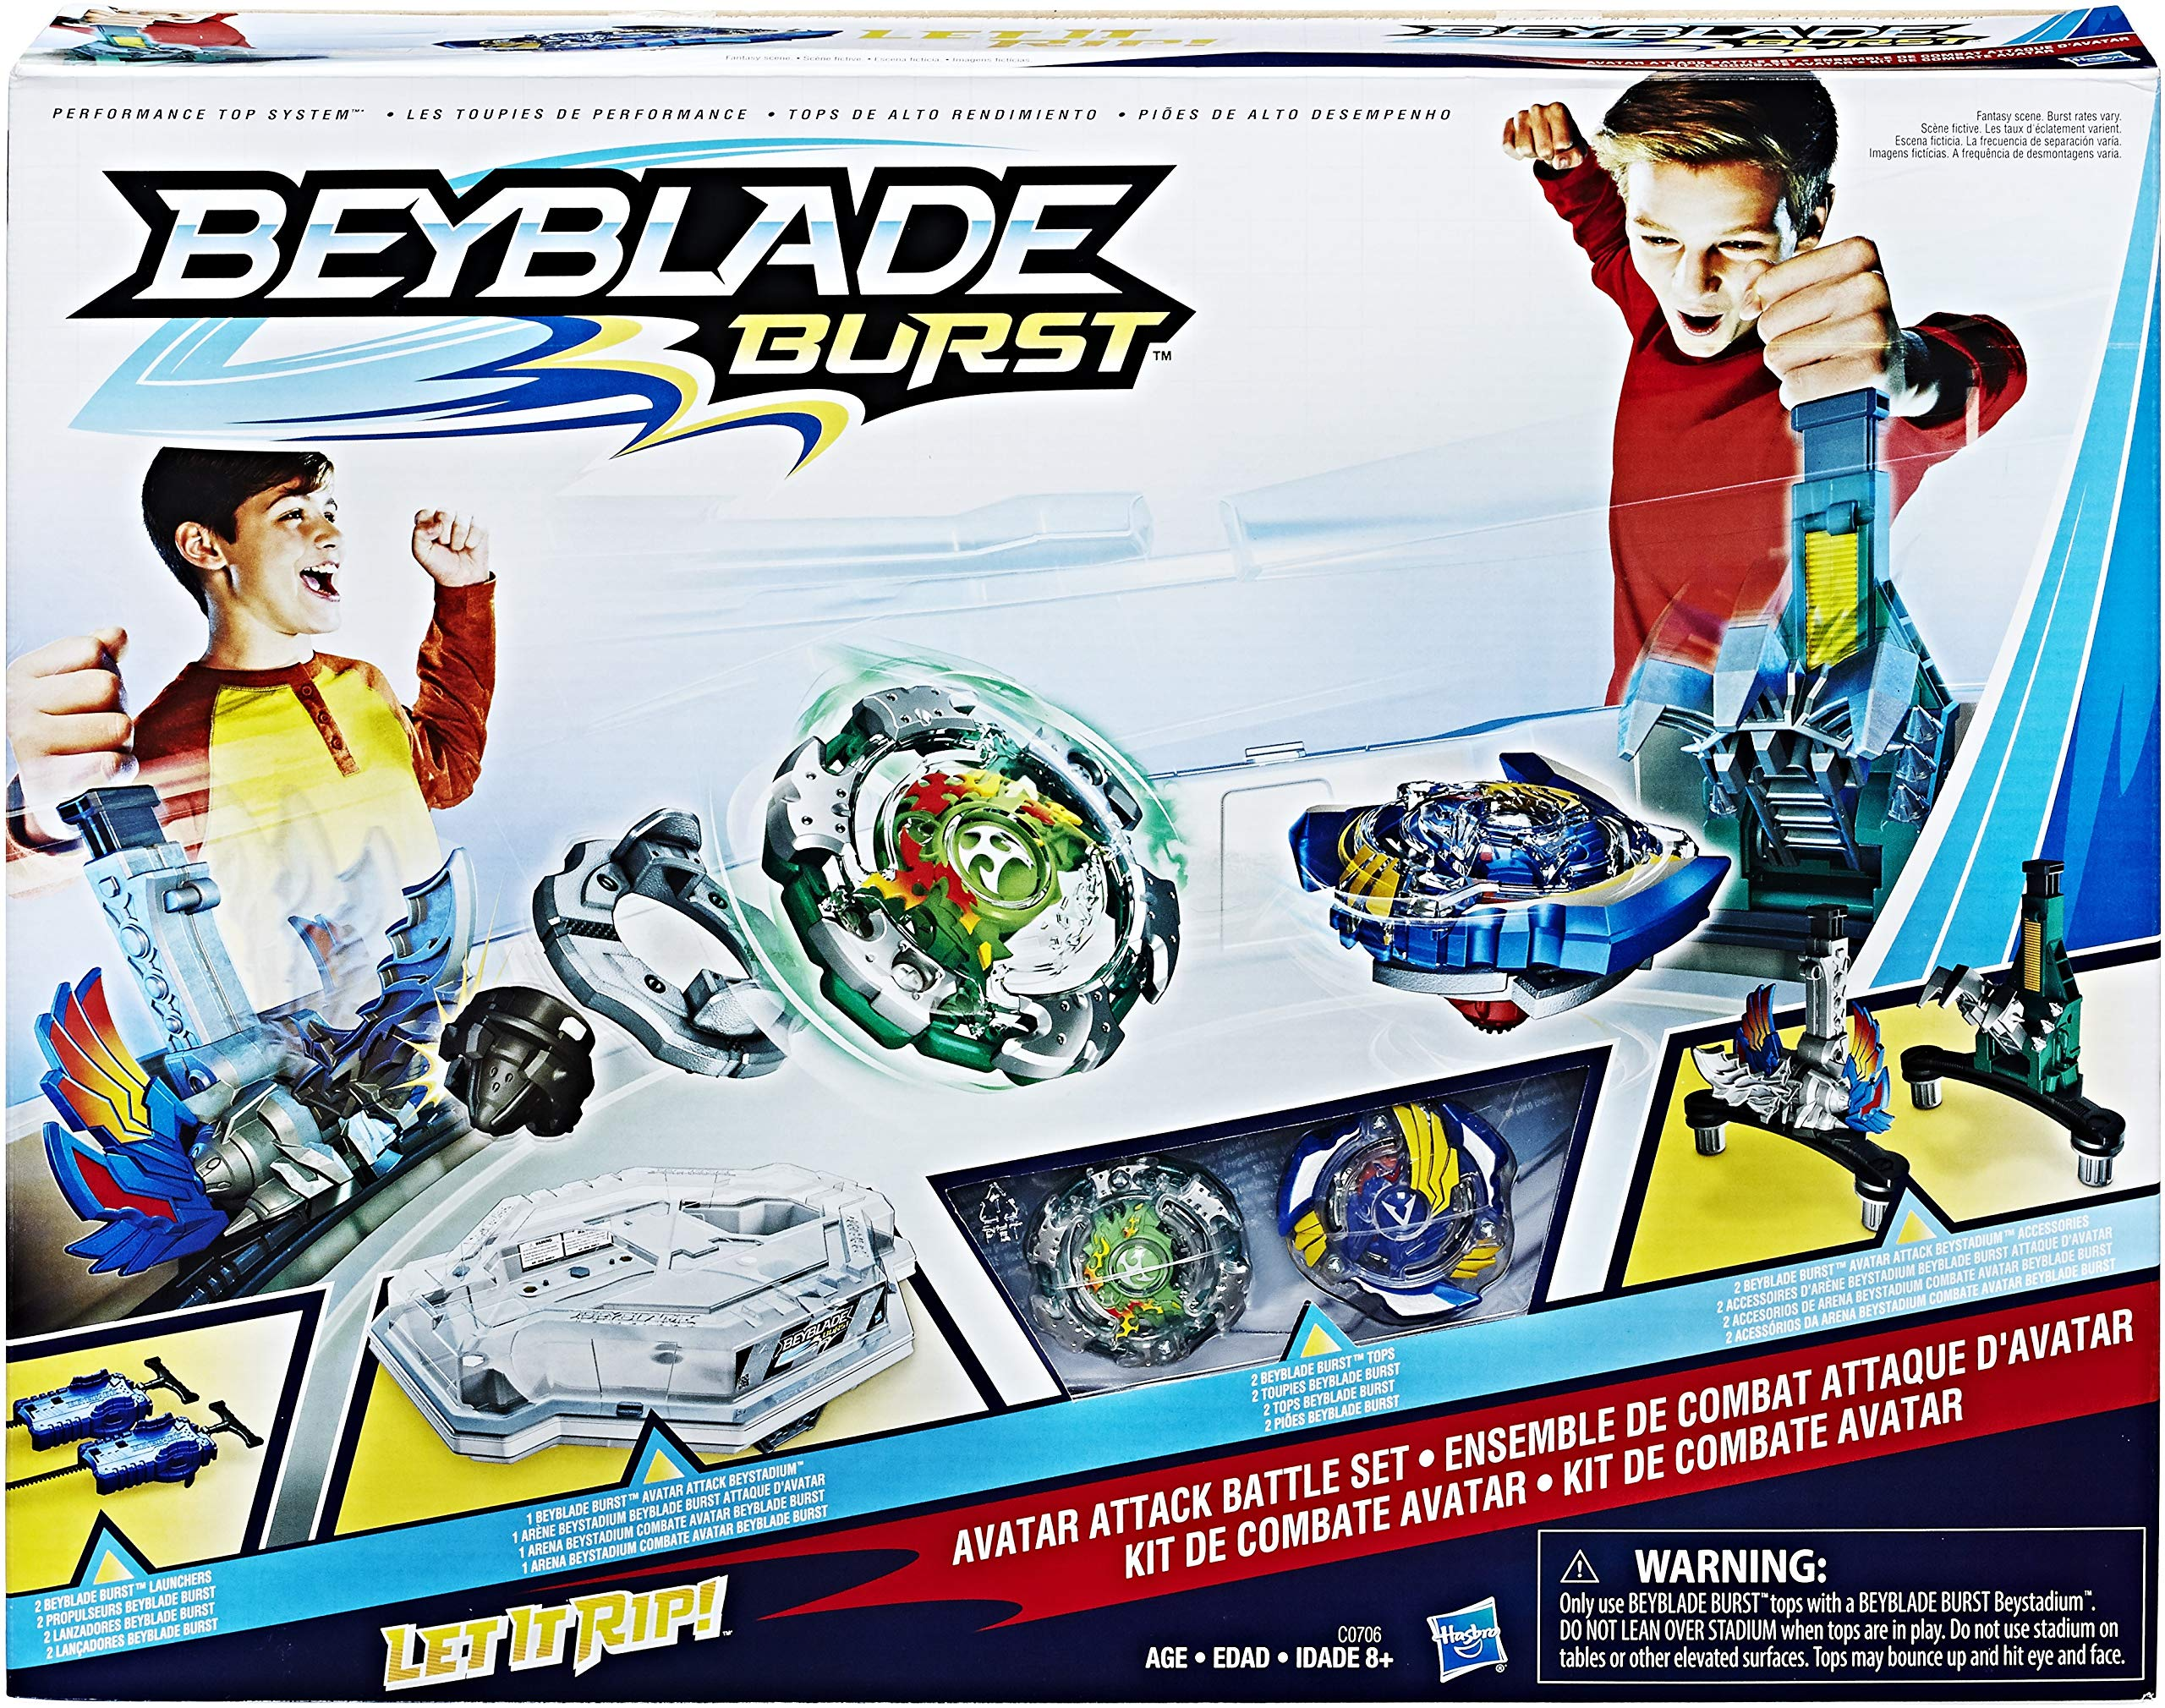 BEYBLADE Burst Avatar Attack Battle Set (Amazon Exclusive) by BEYBLADE